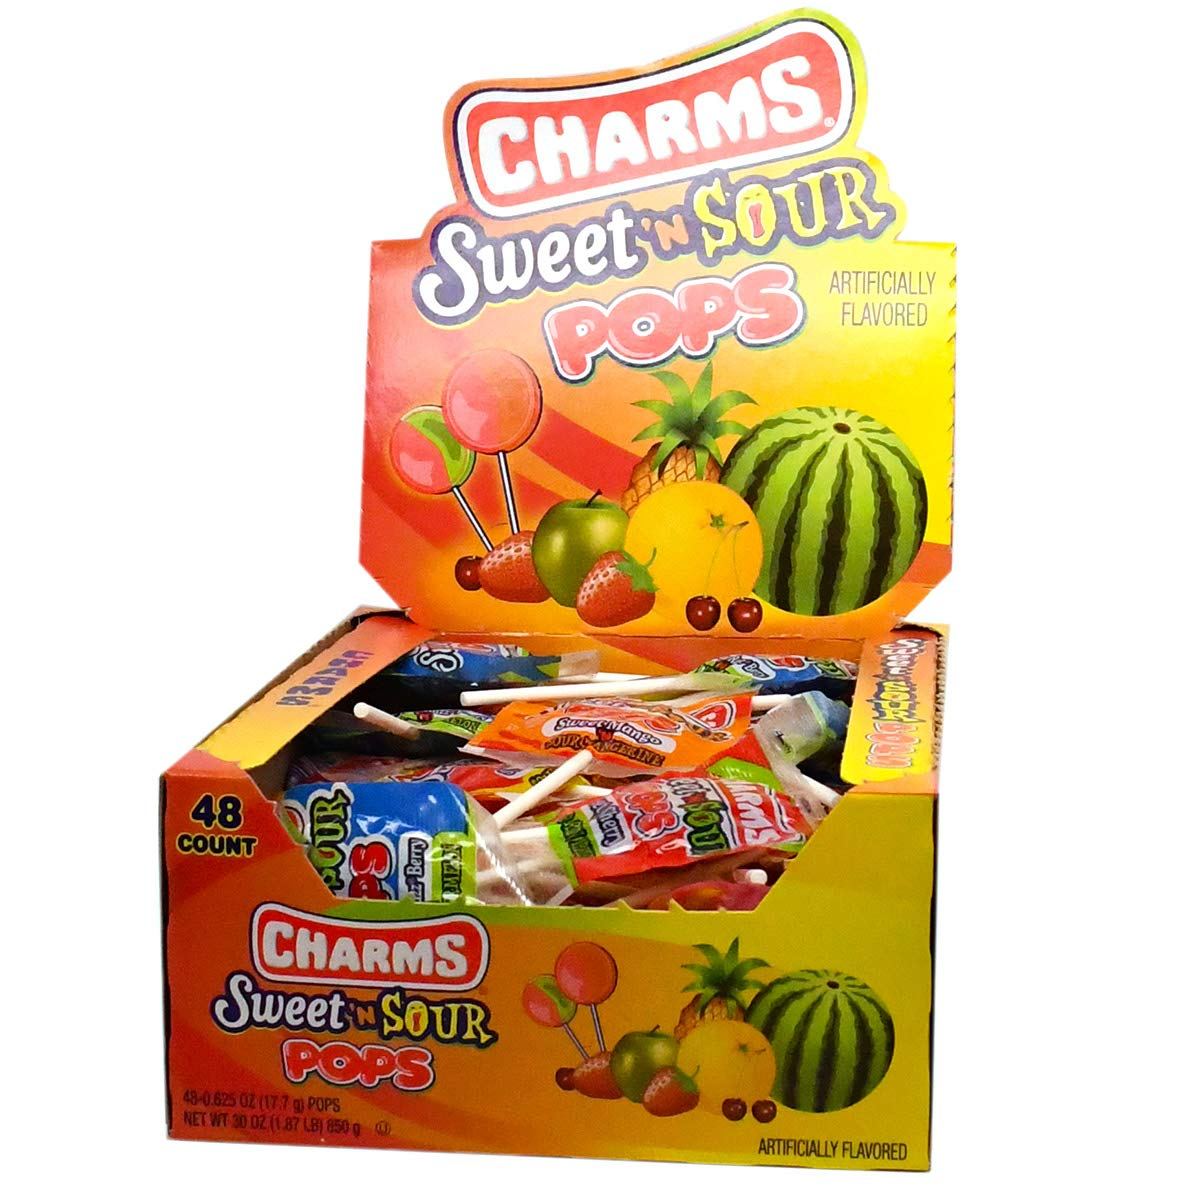 Charms Sweet and Sour Pops, in 5 Assorted Sweet/Sour Flavors, 48-Count Box